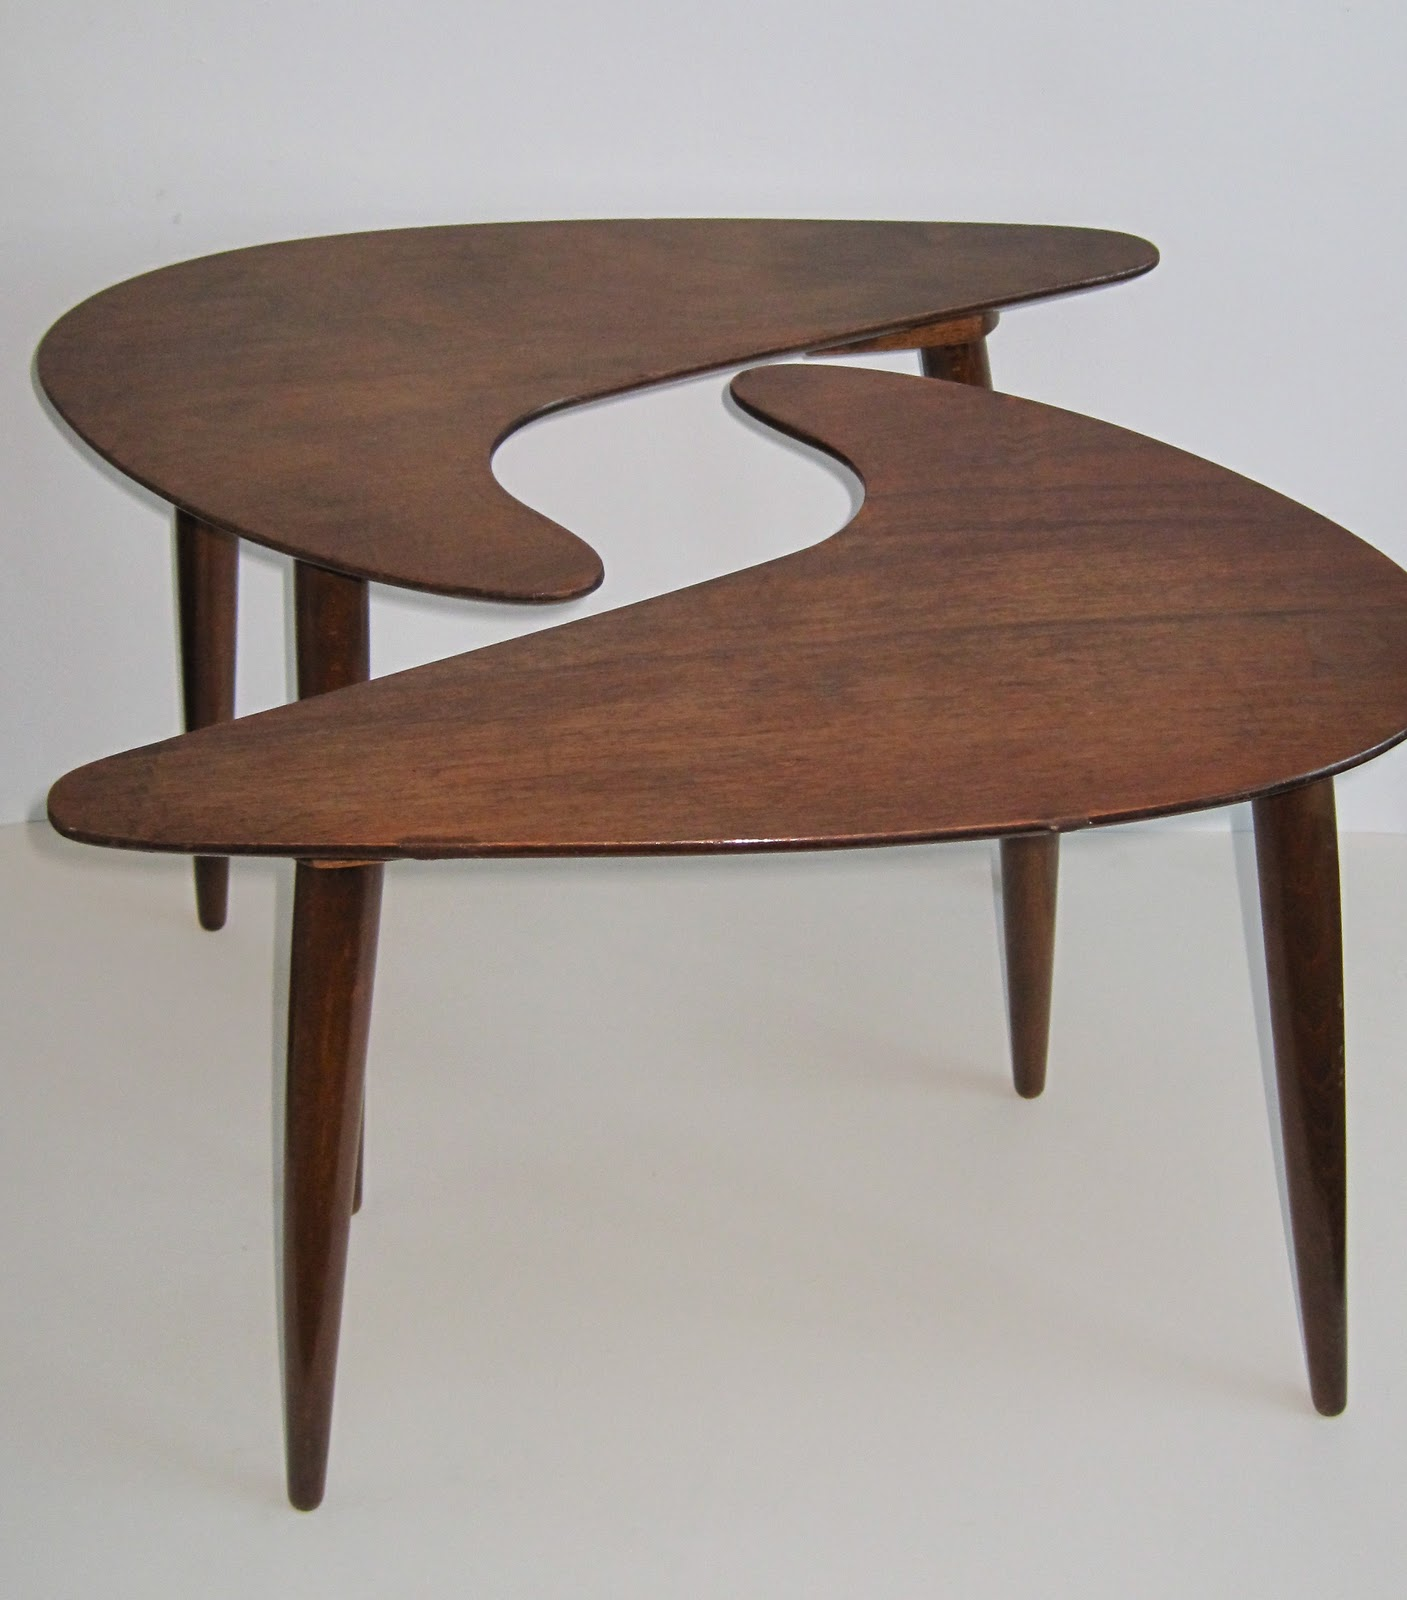 Kirkmodern Boomerang Tables Are Coming Back